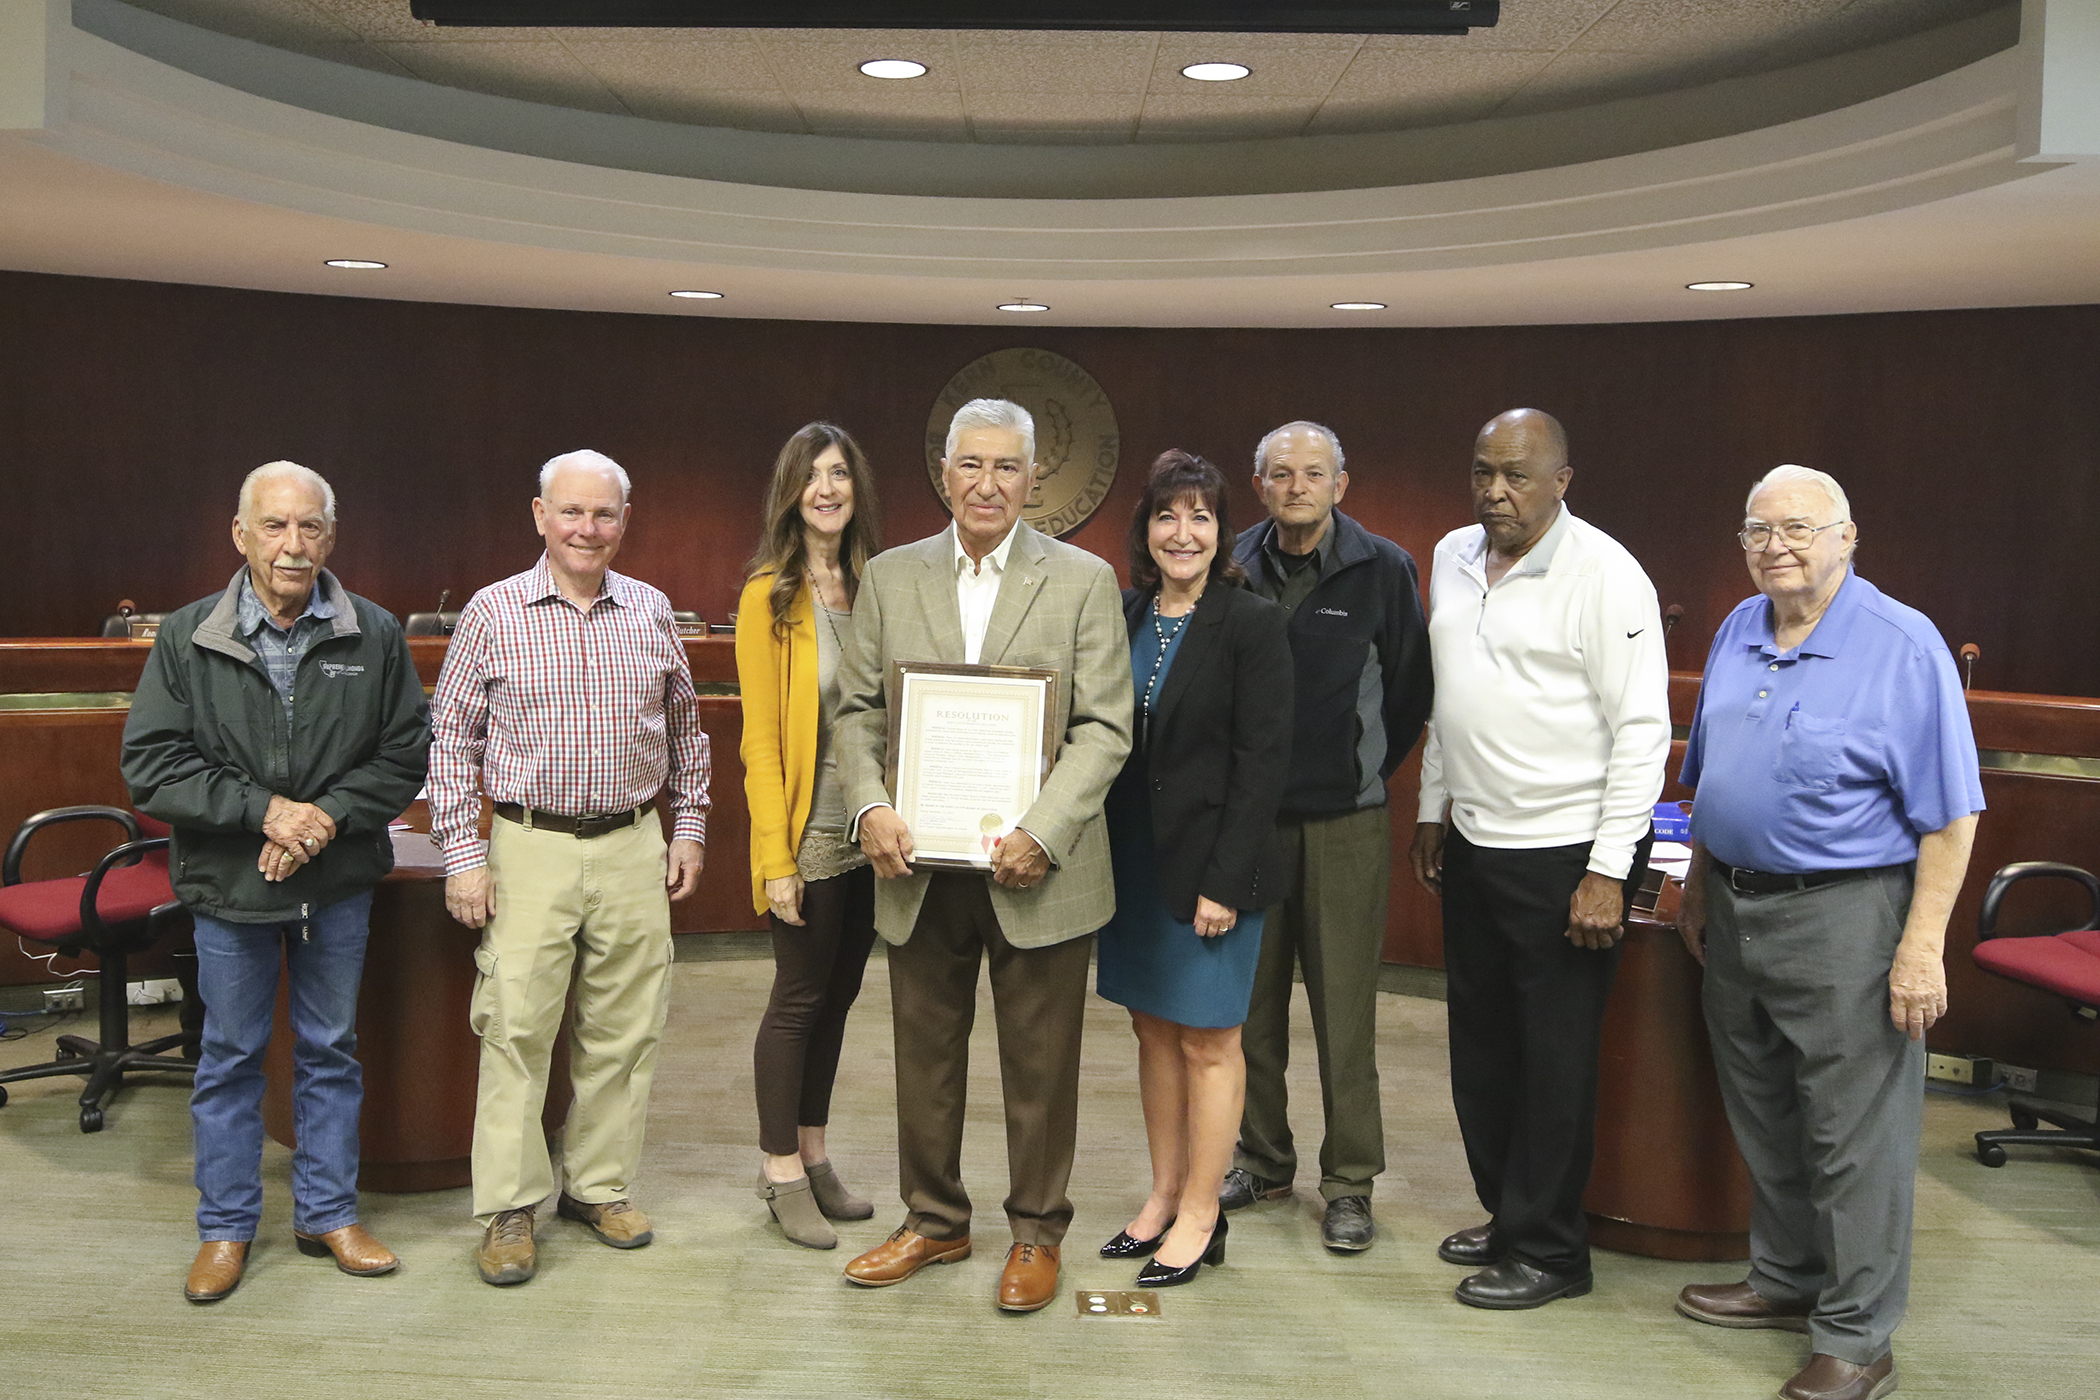 Vince Rojas Honored for 22 Years of Service